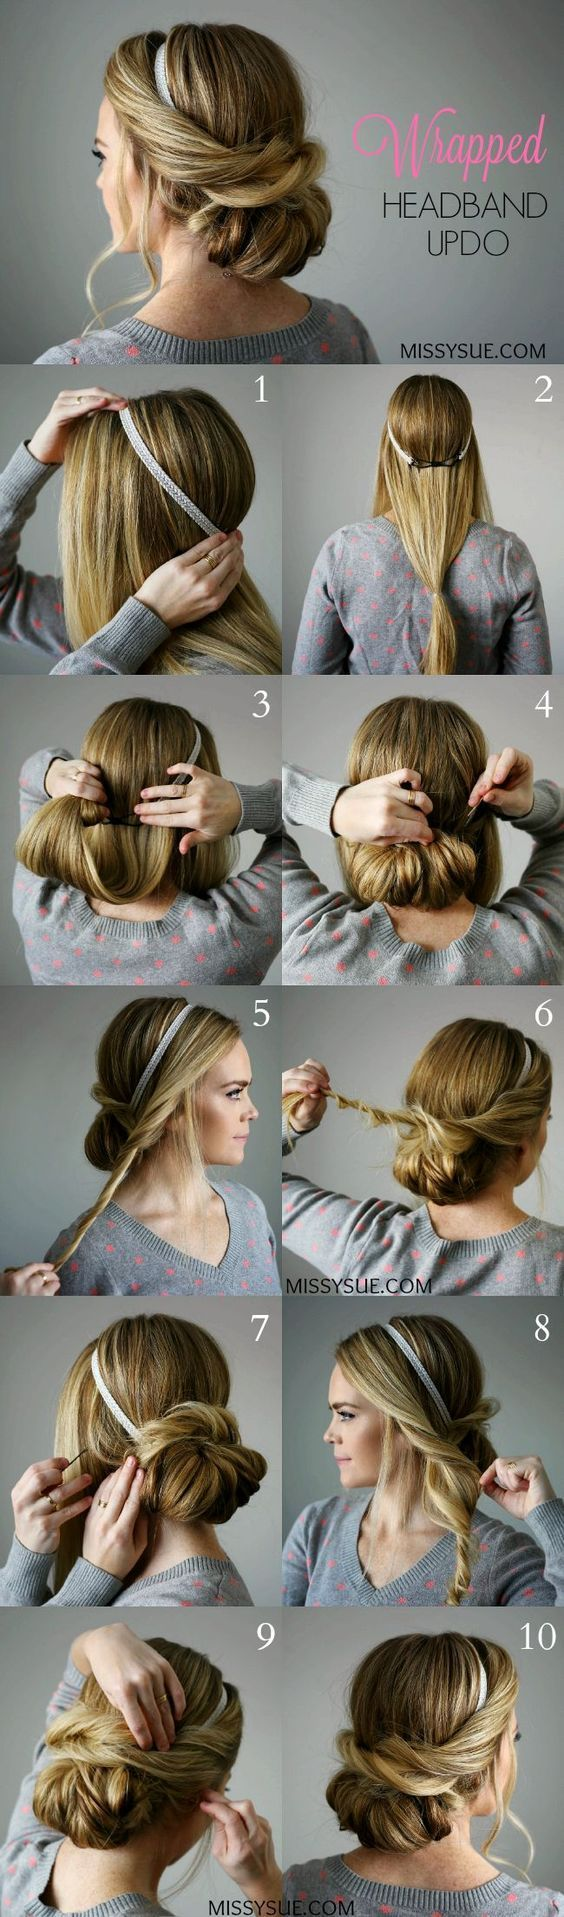 awesome 25 Step By Step Tutorial For Beautiful Hair Updos ❤ - Page 2 of 5 - Trend To Wear by http://www.danahaircuts.xyz/hair-tutorials/25-step-by-step-tutorial-for-beautiful-hair-updos-%e2%9d%a4-page-2-of-5-trend-to-wear/